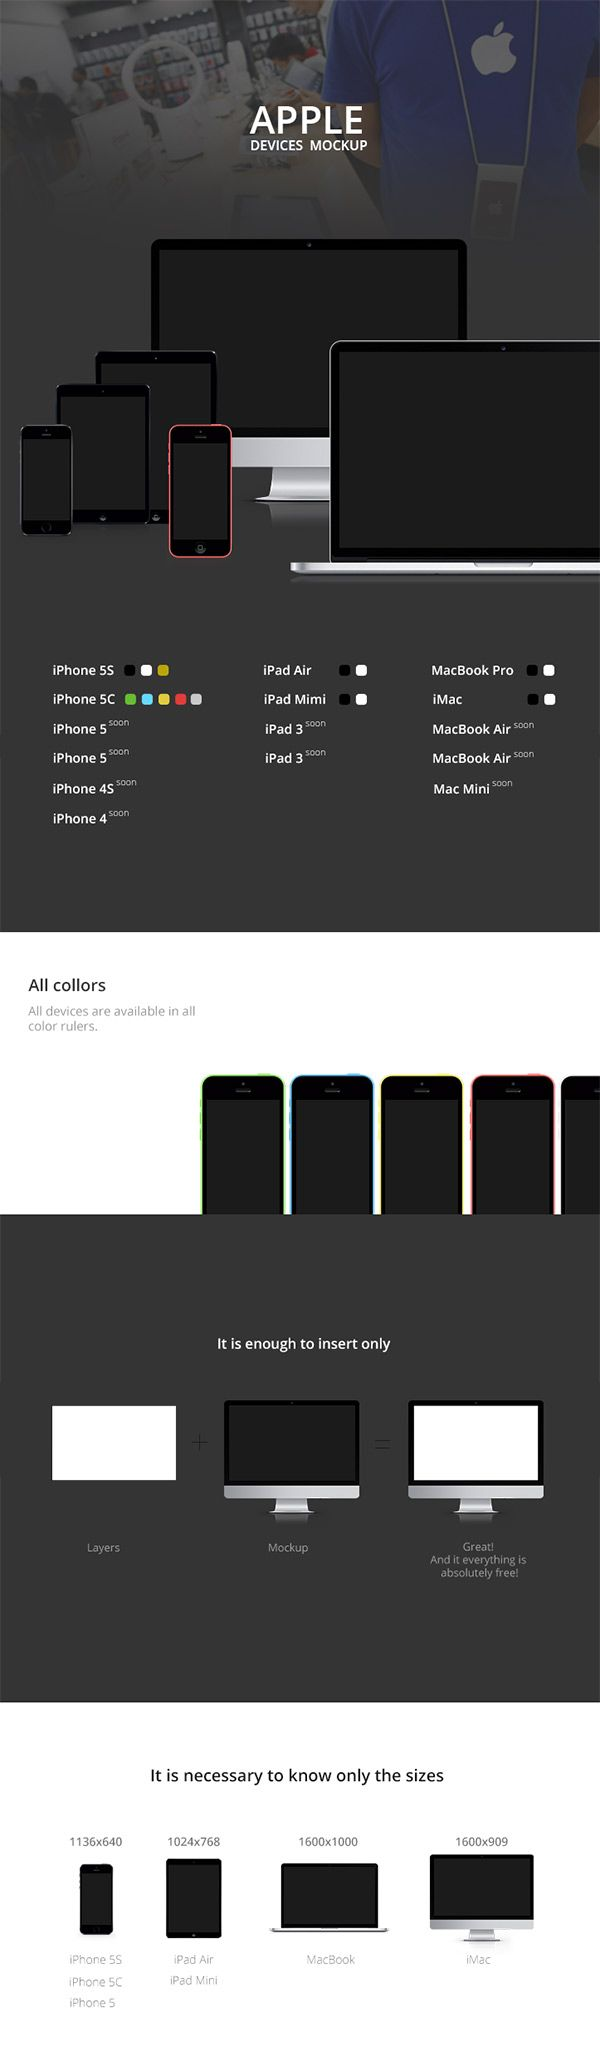 Apple Devices MockUp | GraphicBurger